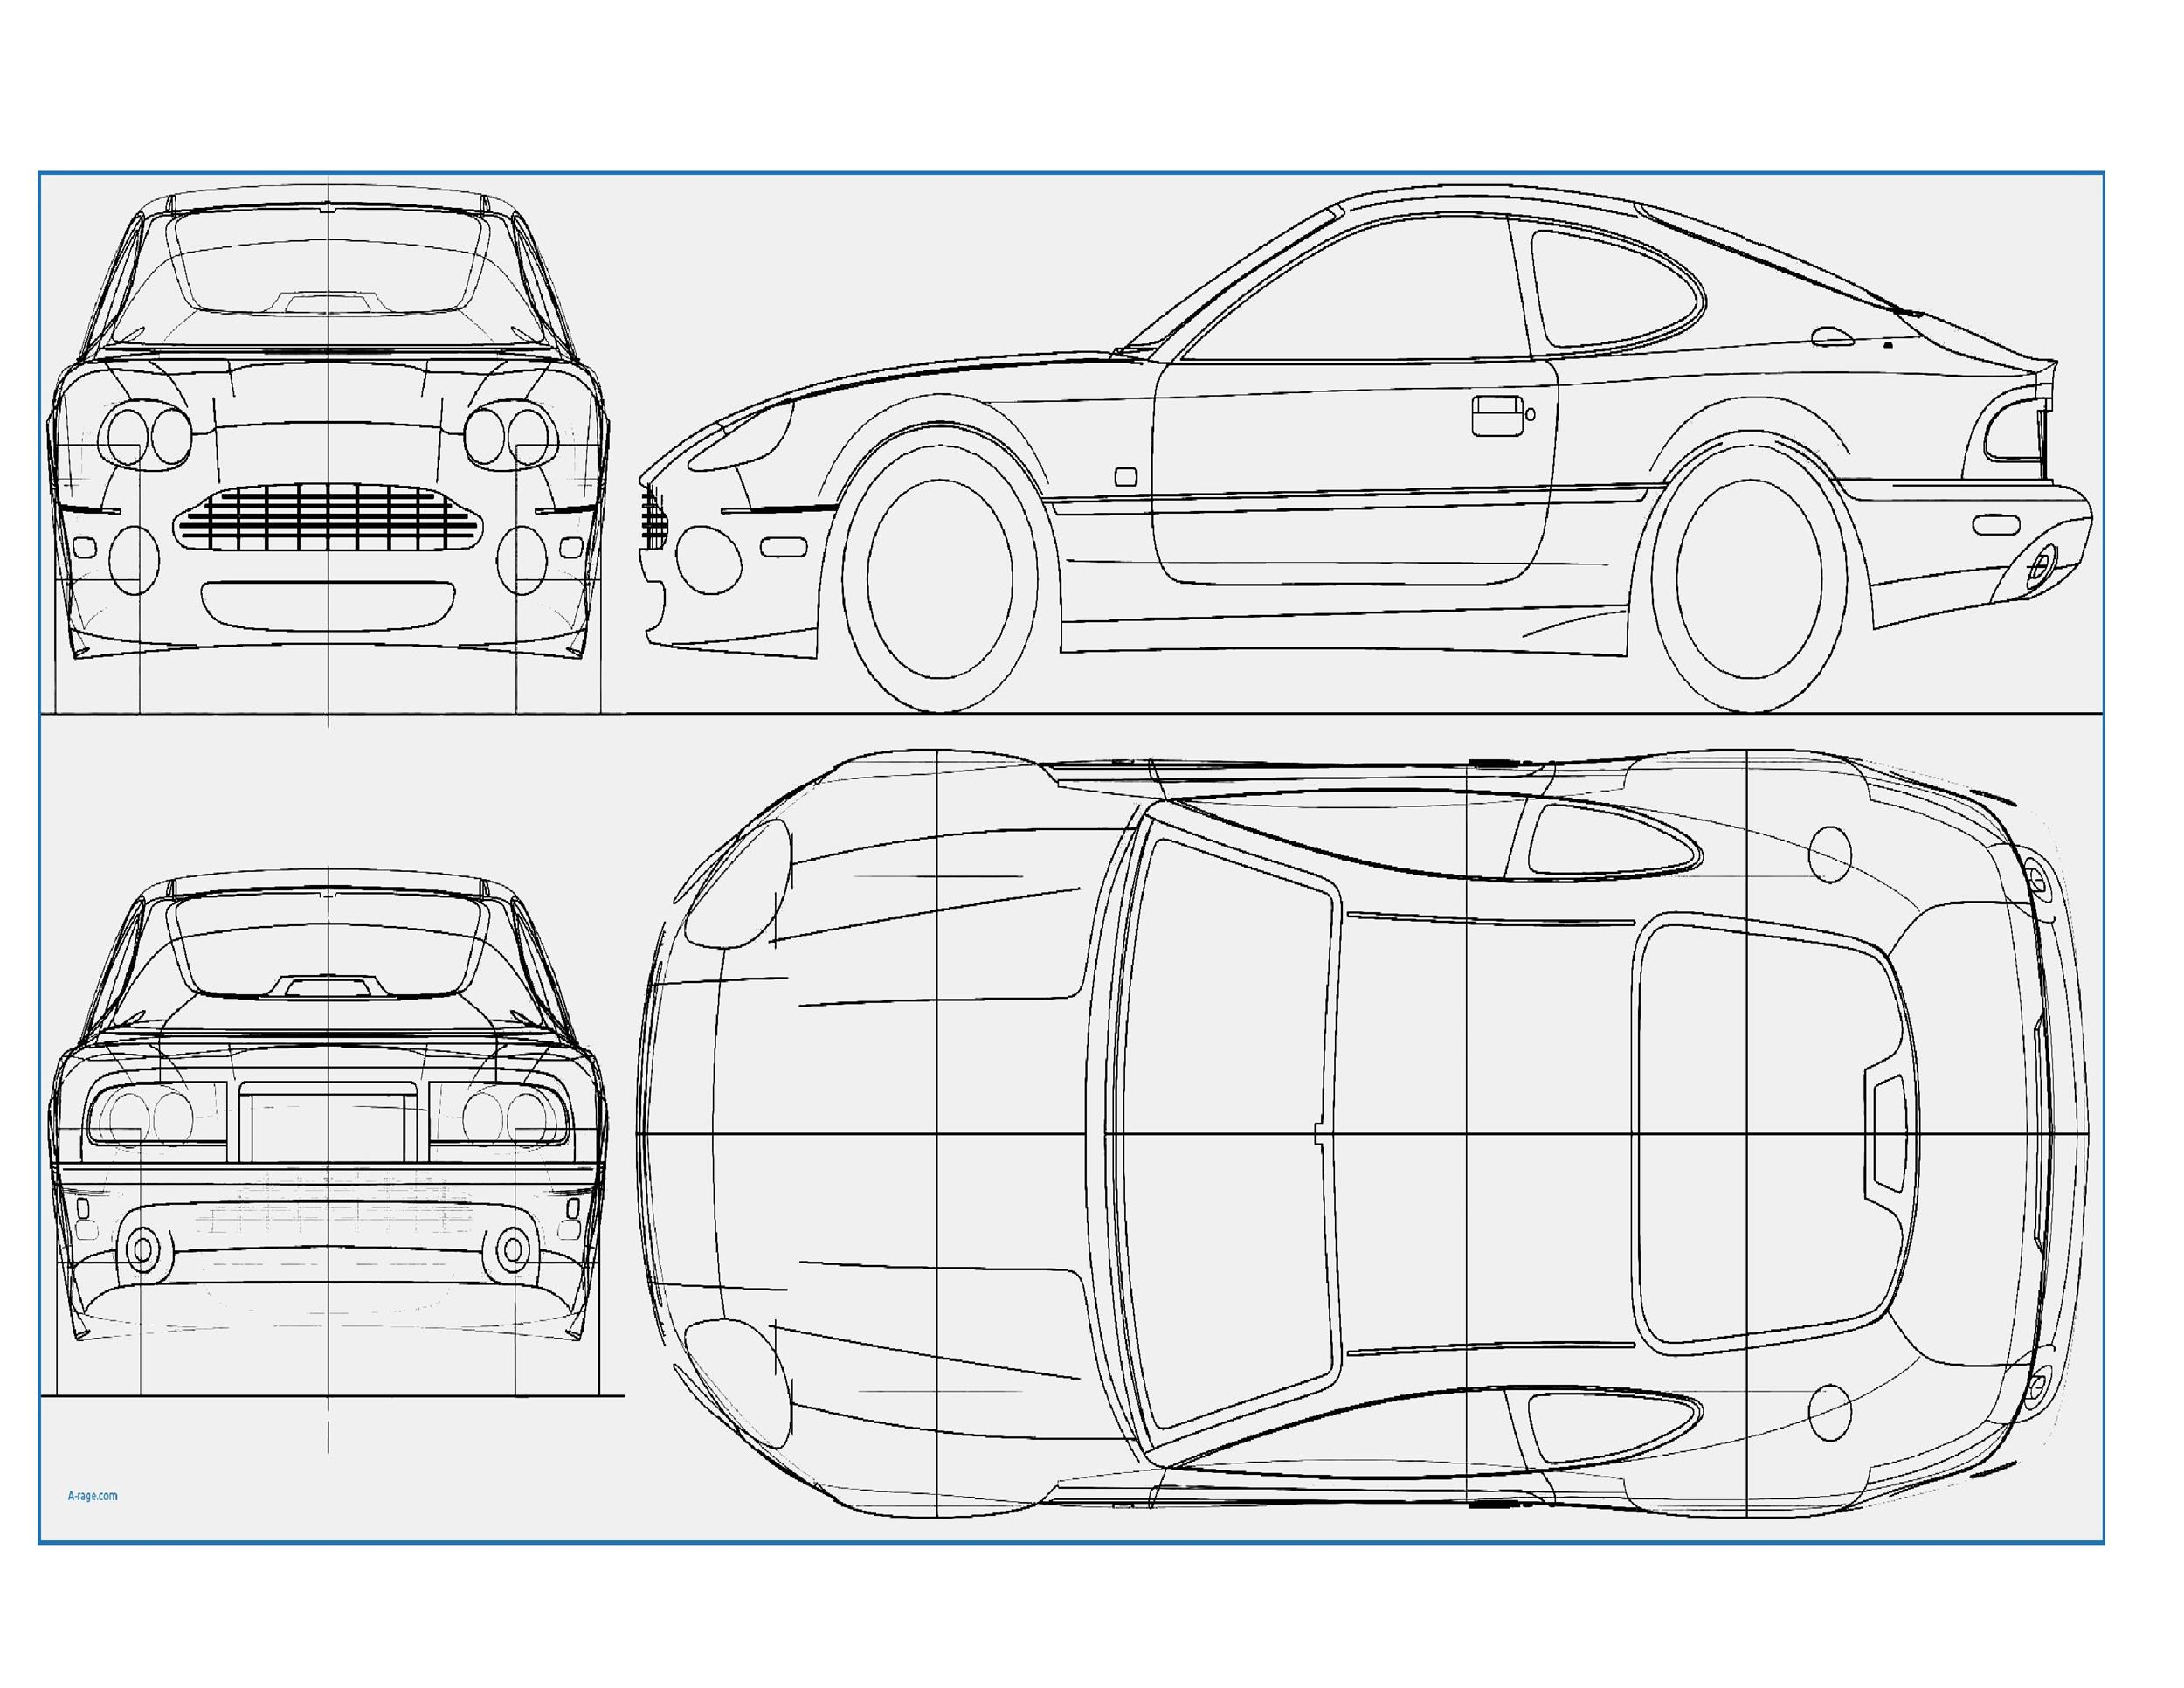 39 Awesome Pinewood Derby Car Designs  Templates ᐅ Template Lab